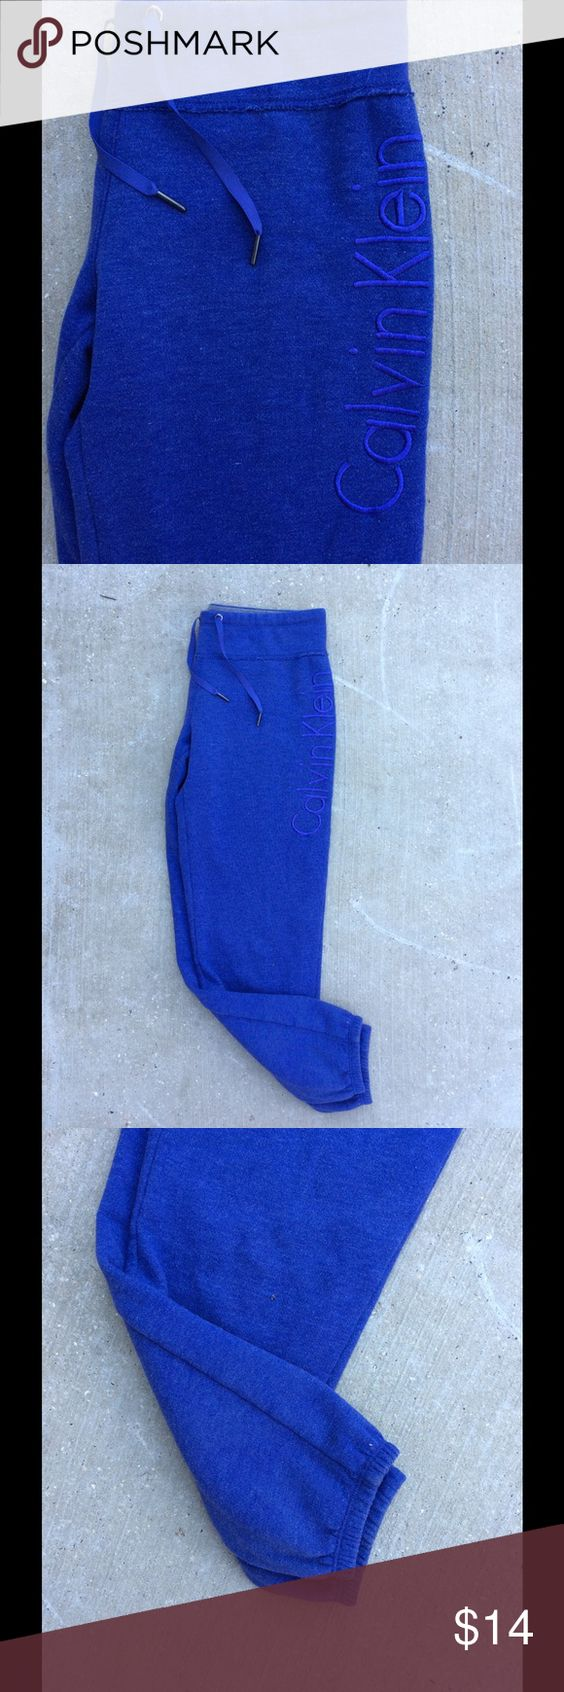 Calvin Klein Sweatpants Size Small Joggers Purple Calvin Klein jogger sweatpants size small. No imperfections or flaws. Immaculate condition Calvin Klein Pants Track Pants & Joggers